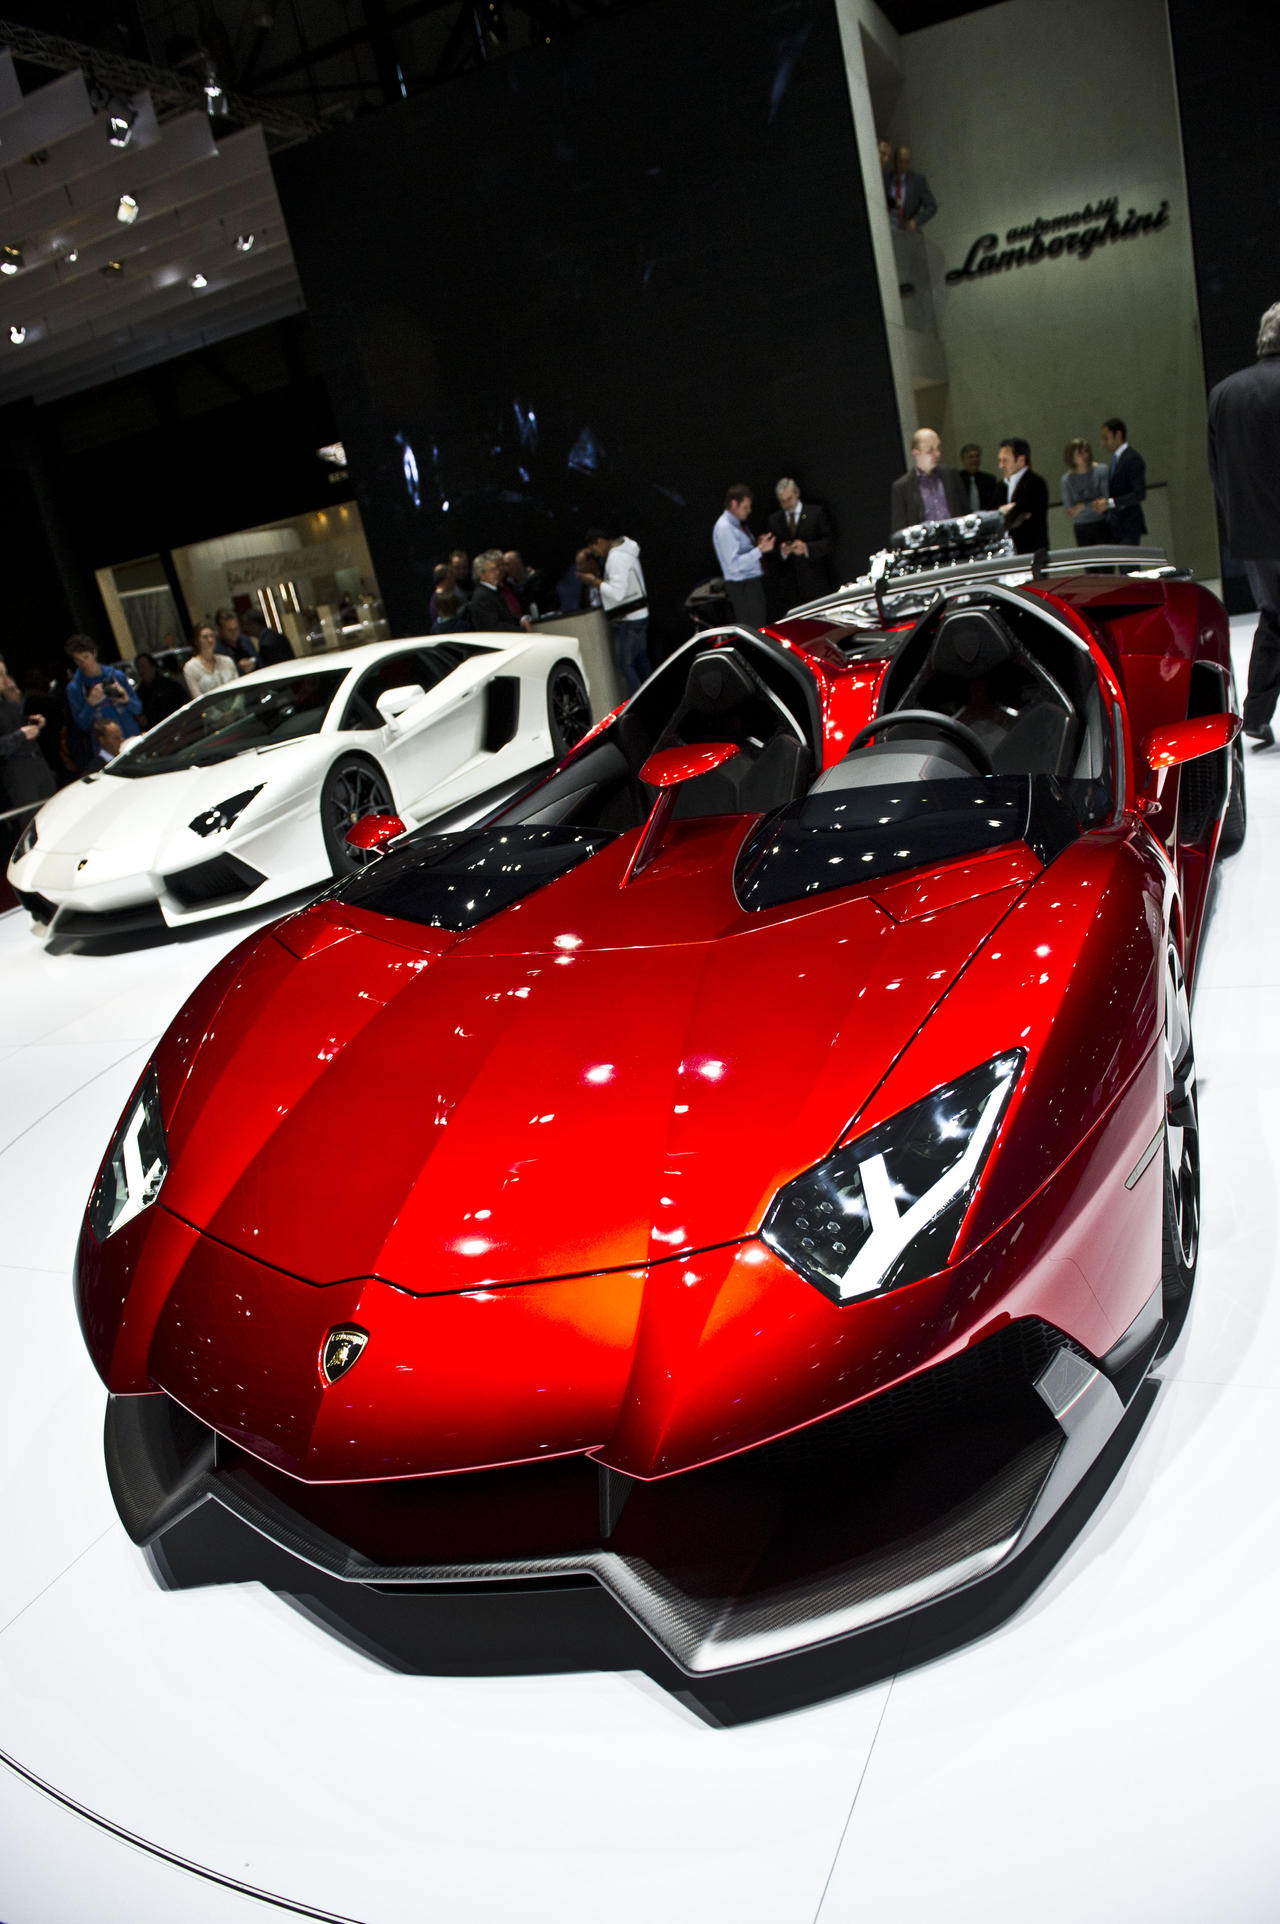 Salon de l 39 auto geneve xxv by croc blanc on deviantart for Adresse salon de l auto geneve